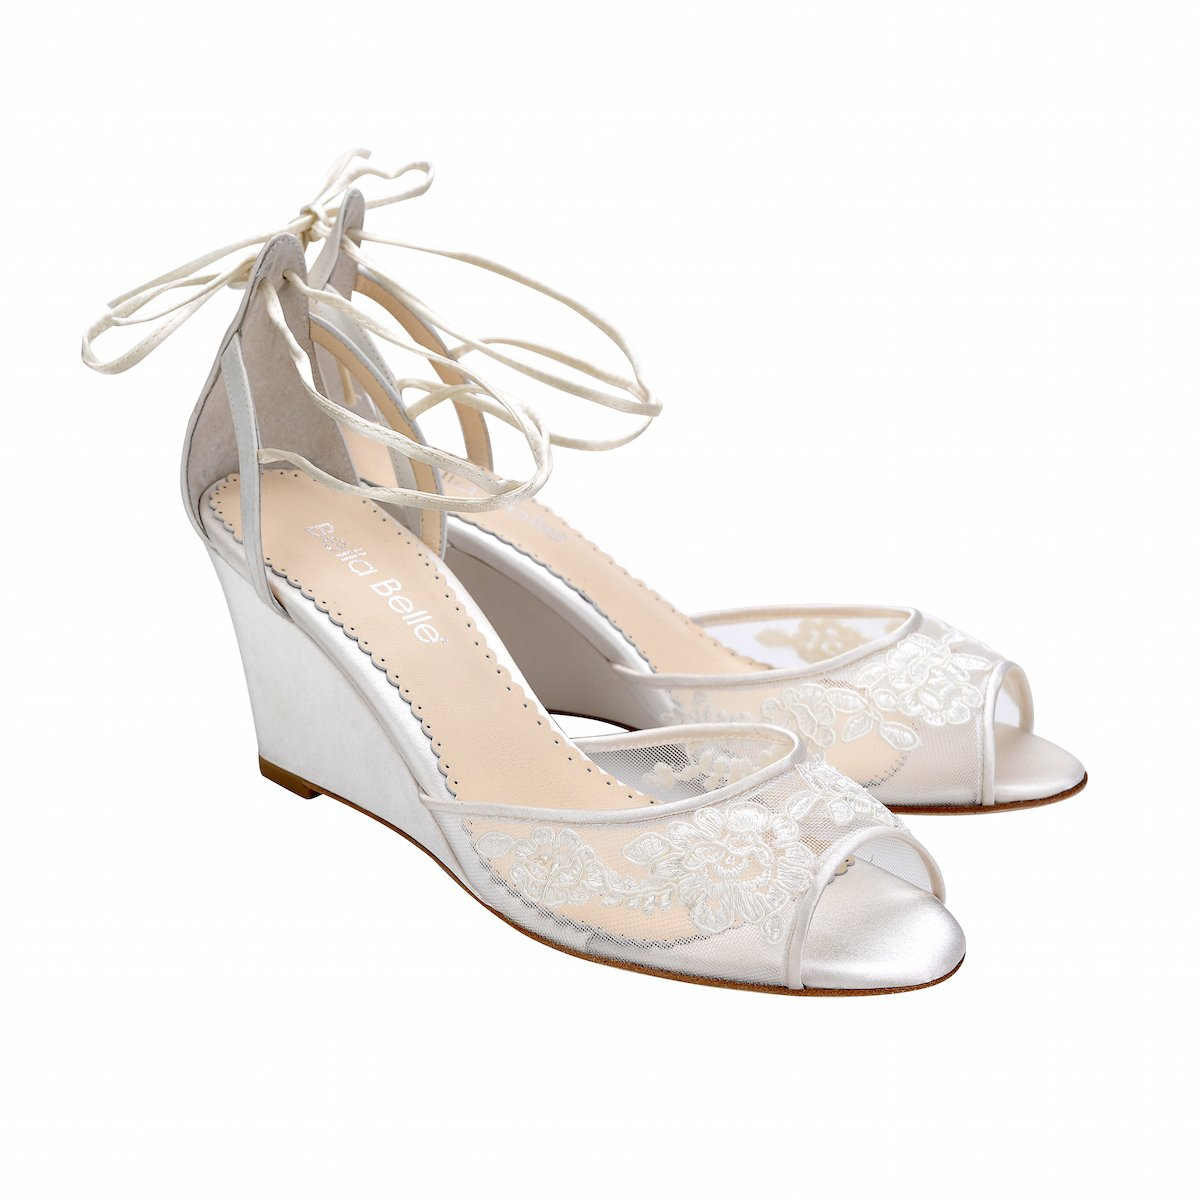 466b22b7907 Ivory Floral Lace Wedge Wedding Shoe in 2019